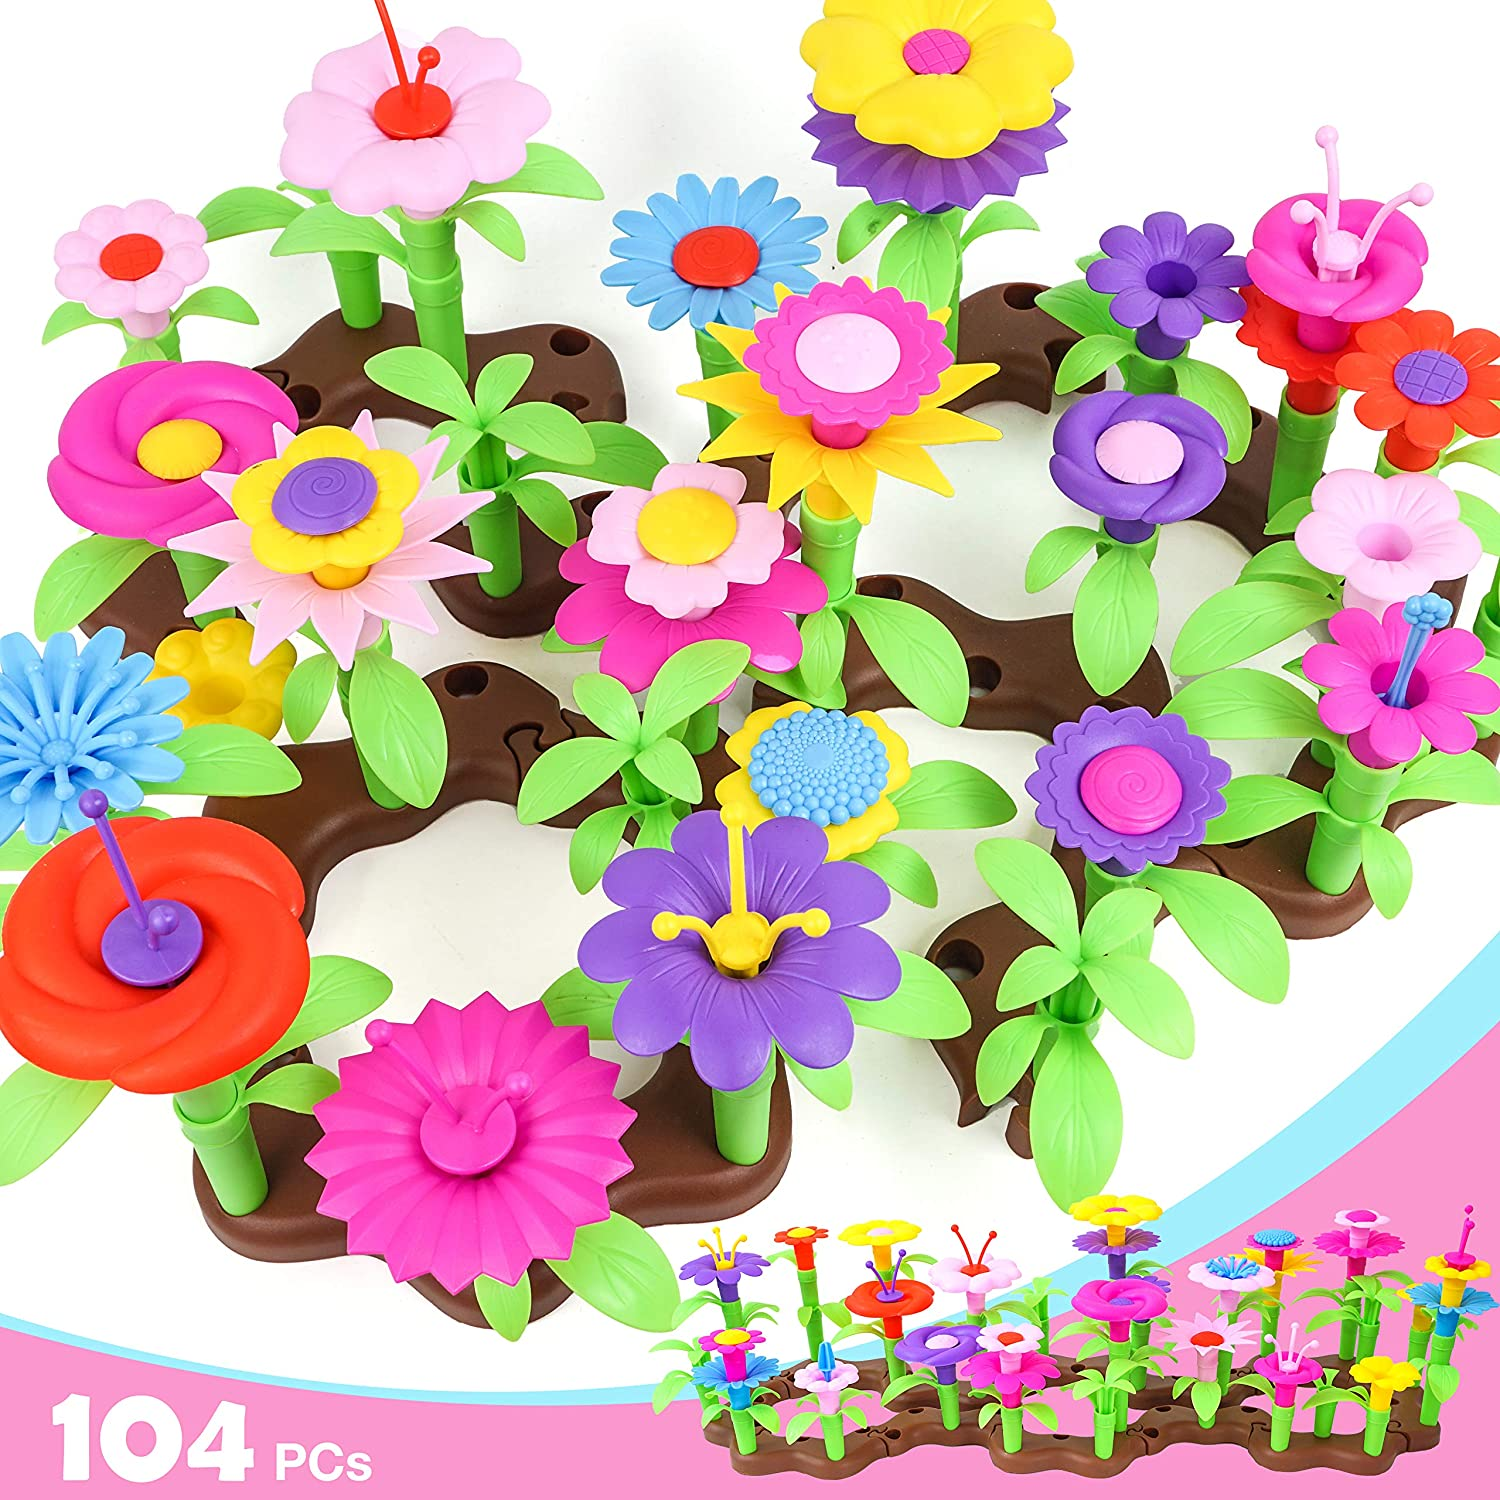 Flower Building Toys, 104PCs Garden Building Block Toys for Kids Girls, Bouquet Arts Educational Toy for Kids Age 3+ Years Old